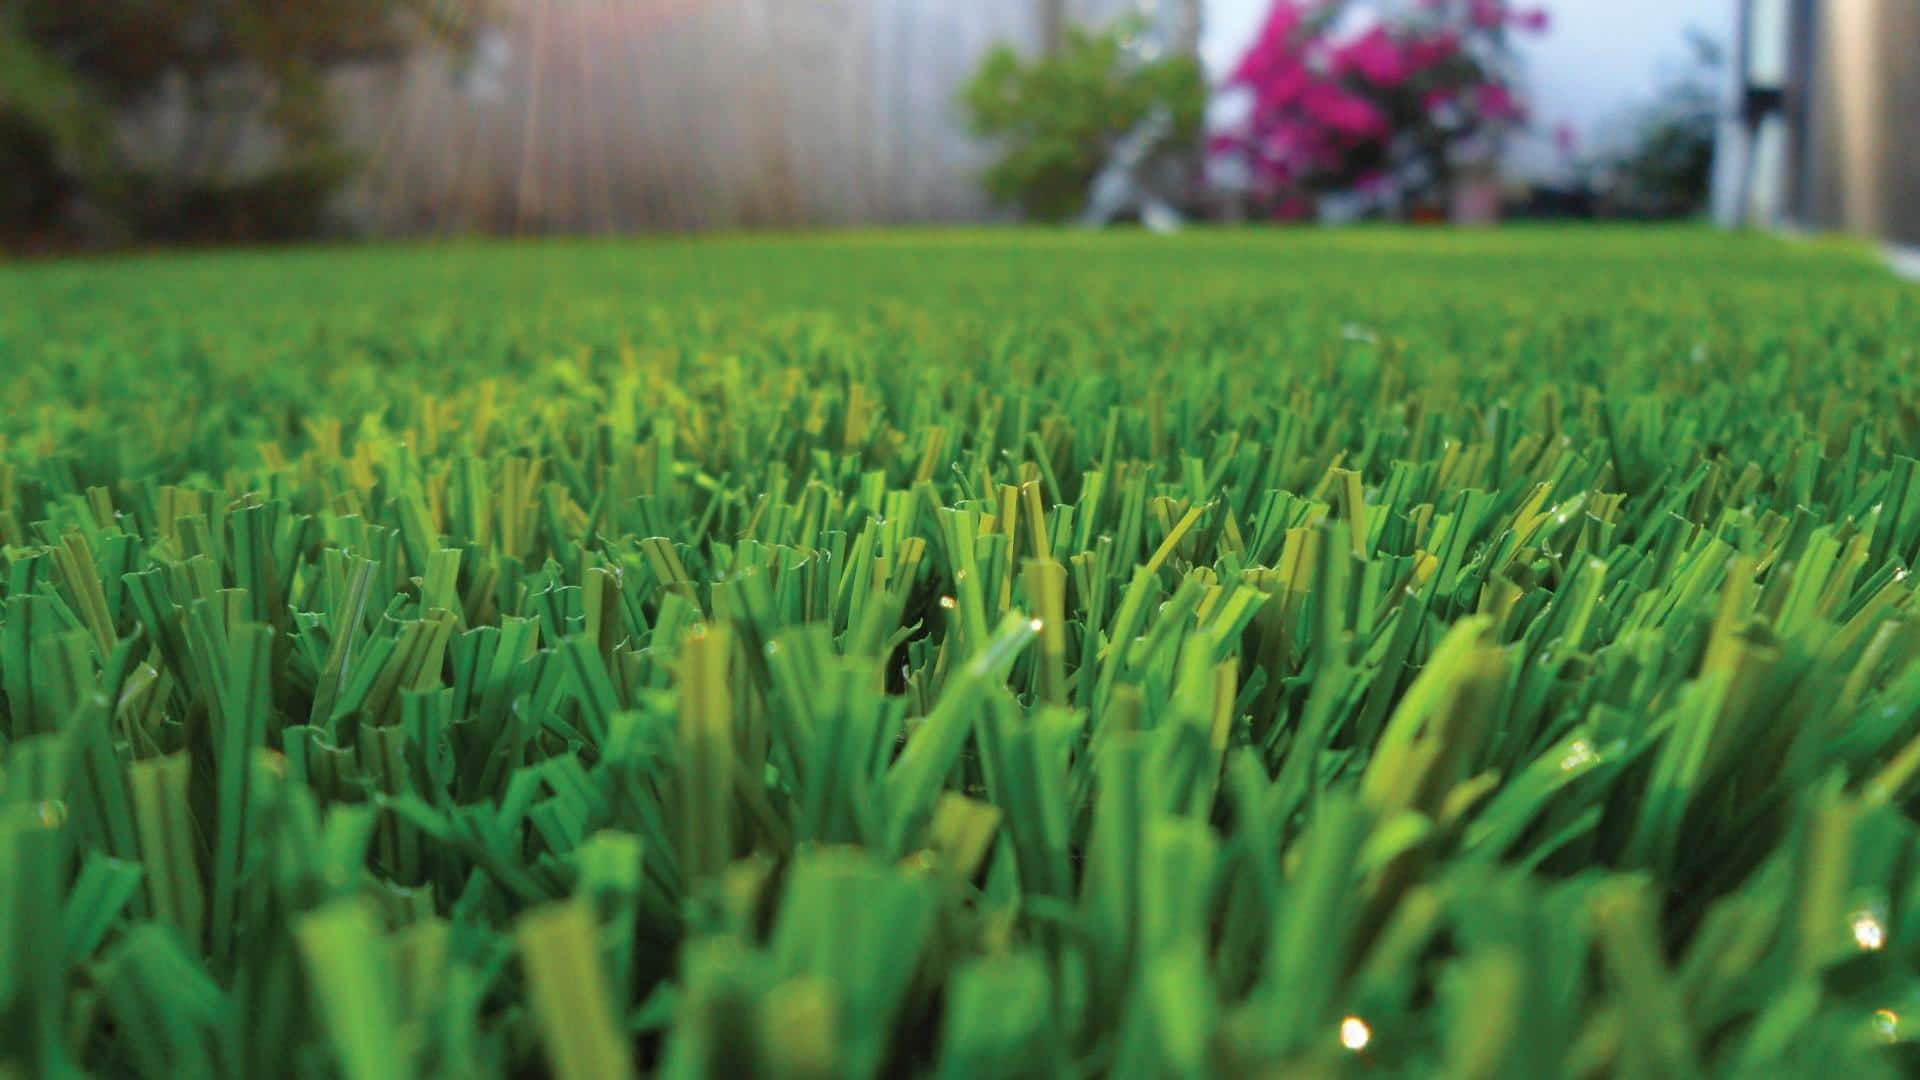 Turf Cleaning Phoenix and Surrounding Areas – Your Investment Needs to be Protected